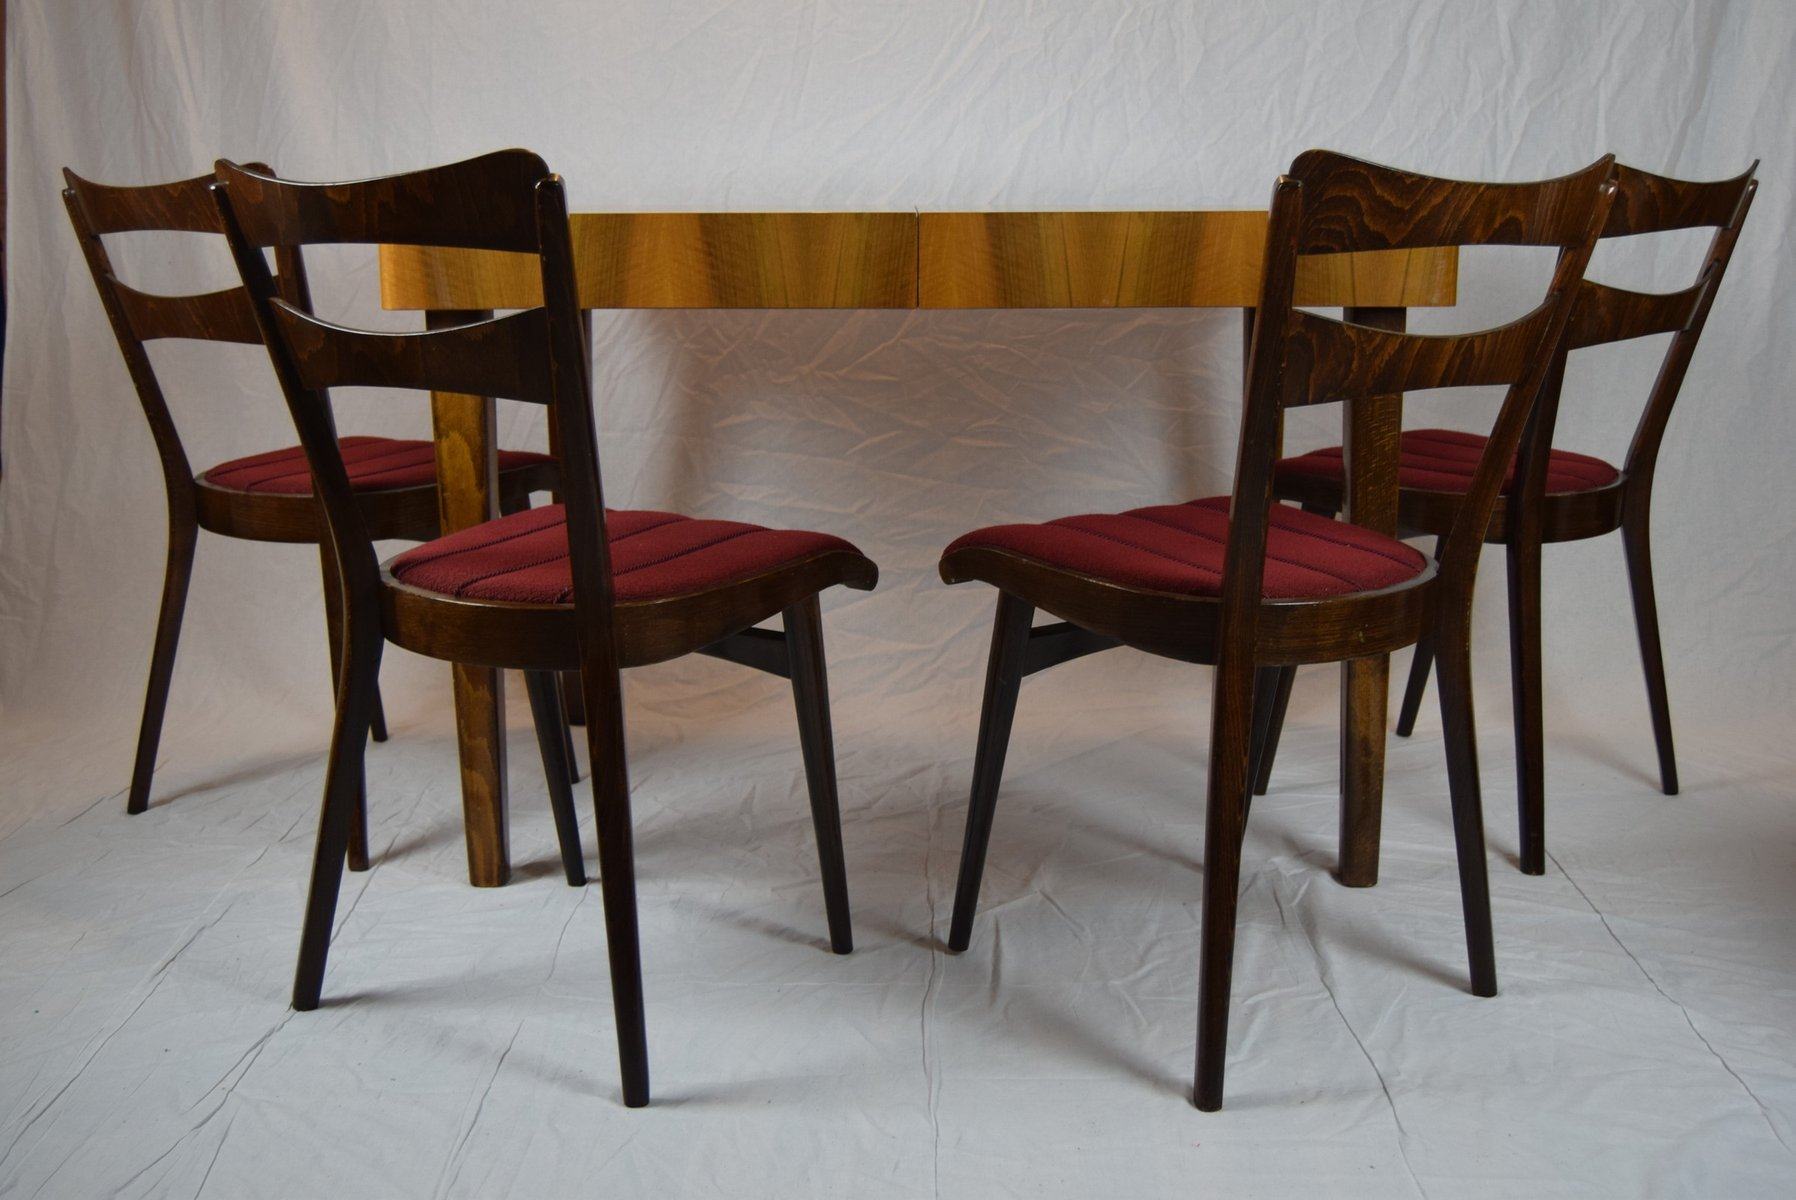 Teak Dining Room Chairs Teak Dining Table Four Chairs 1960s